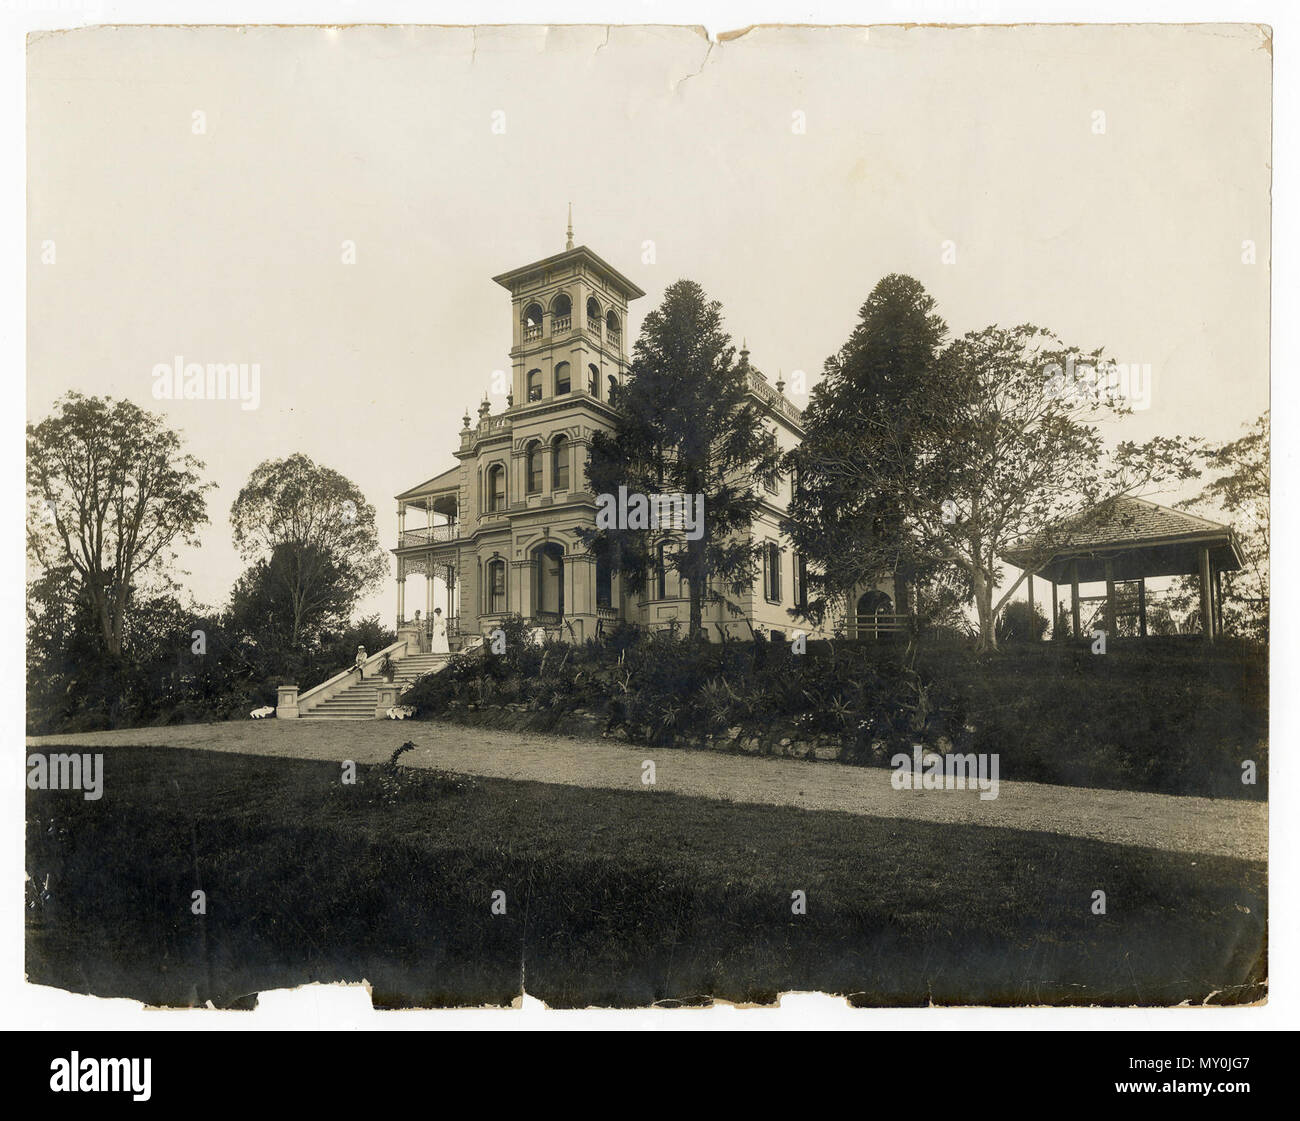 Government House, Fernberg Road, Paddington, c 1912. Johann Heussler, a wealthy Brisbane merchant purchases 22 acres of land from the Government in 1862 and made plans to build a house there. Local architect Benjamin Backhouse designed a house in 1865, to be constructed from stone excavated on site combined with a cement and lime mixture.  The Heussler family lived at Fernberg from 1865 until 1872 when the high cost of upkeep forces foreclosure on the property by the mortgagee.  Sir Arthur Palmer, Premier of Queensland (1870-1874), and later Lieutenant Governor resided in Fernberg from 1872 to - Stock Image